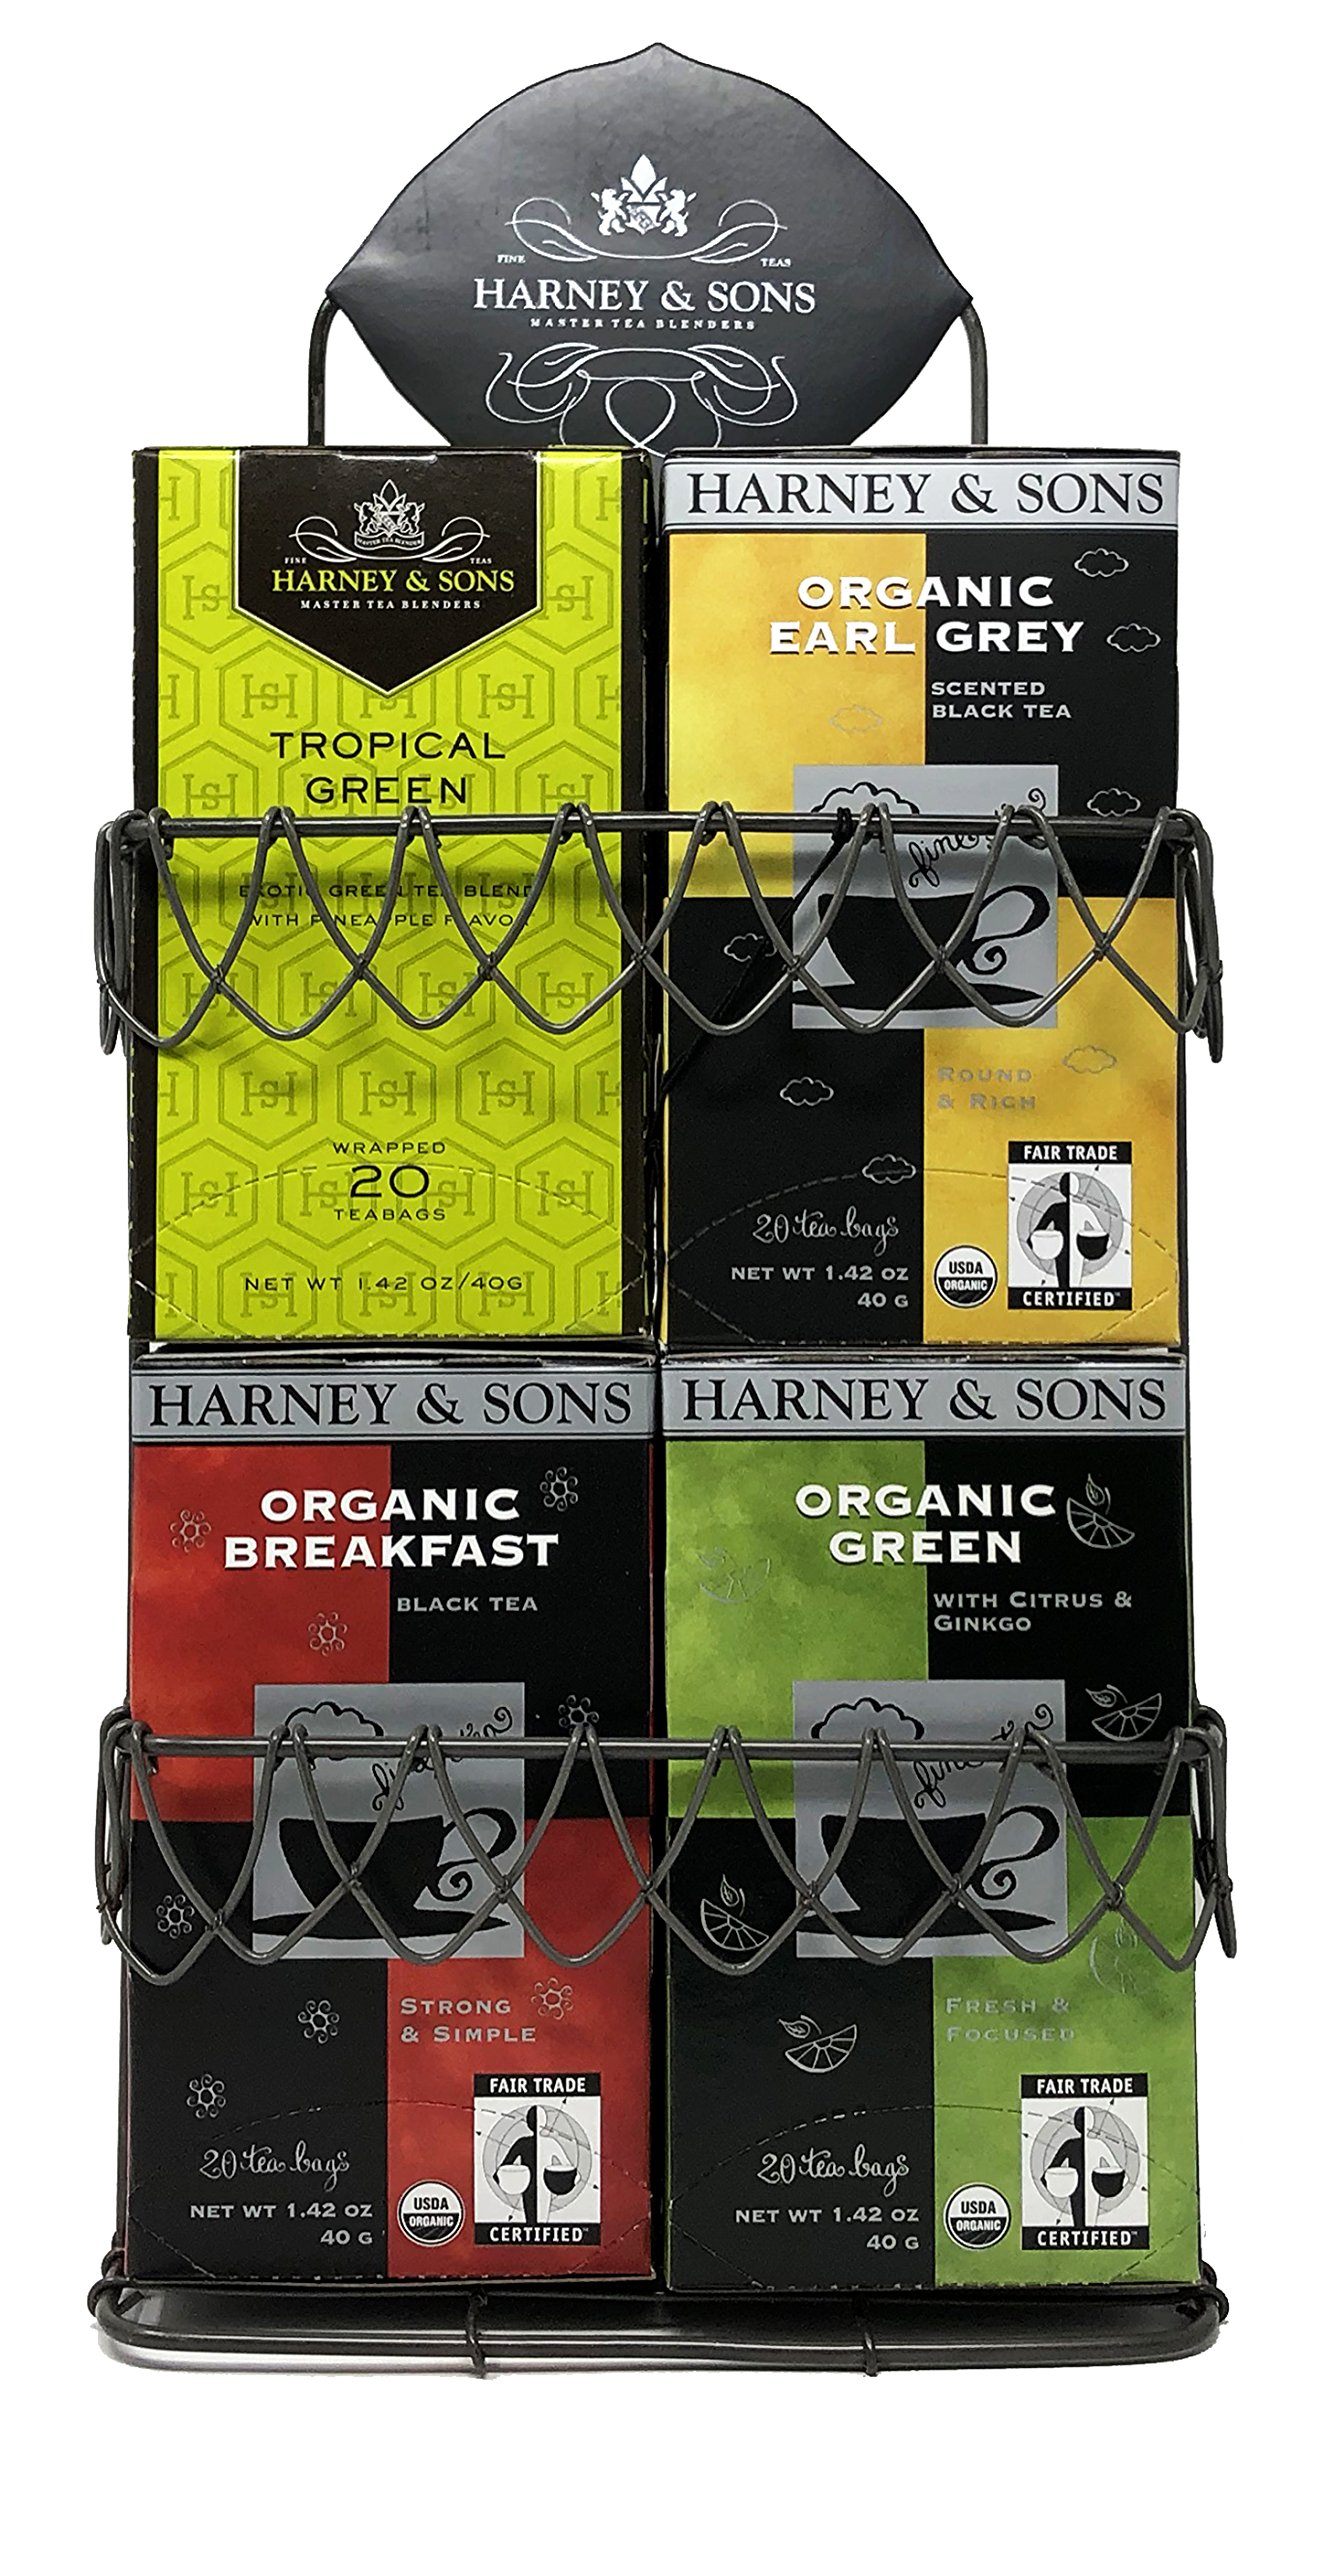 Harney & Sons Organic Tea Variety Sampler with Wire Rack – Great For Kitchens, Break Rooms, Birthday, Hostess and Co-worker Gifts